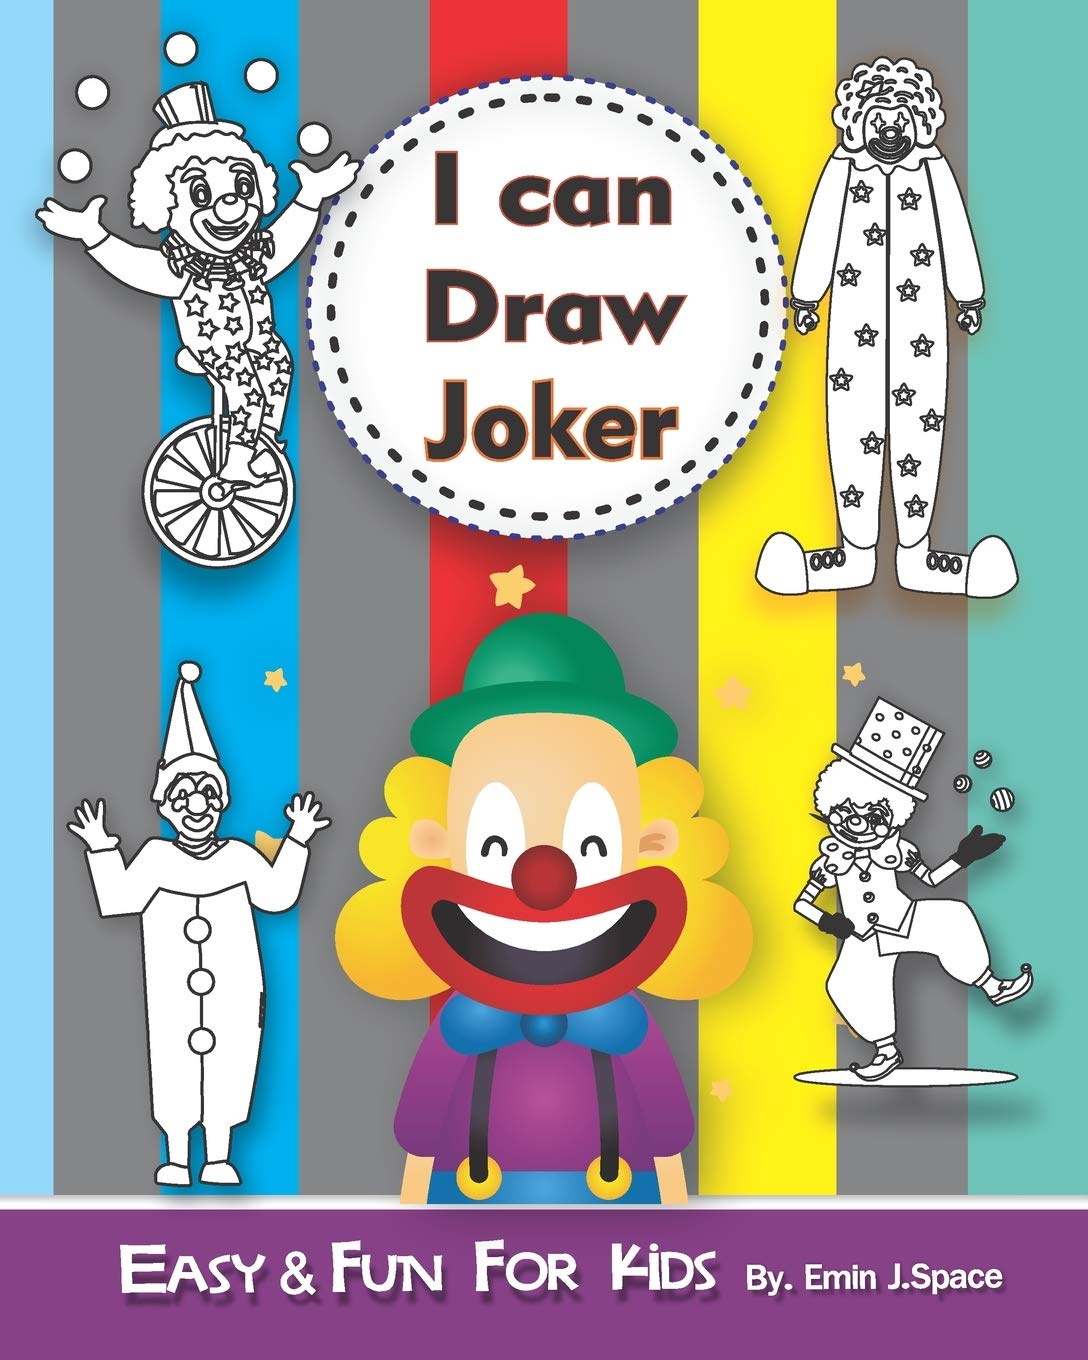 Buy I Can Draw Joker Easy And Fun Activity Book For Kids Ages 4 8 Book Online At Low Prices In India I Can Draw Joker Easy And Fun Activity Book For